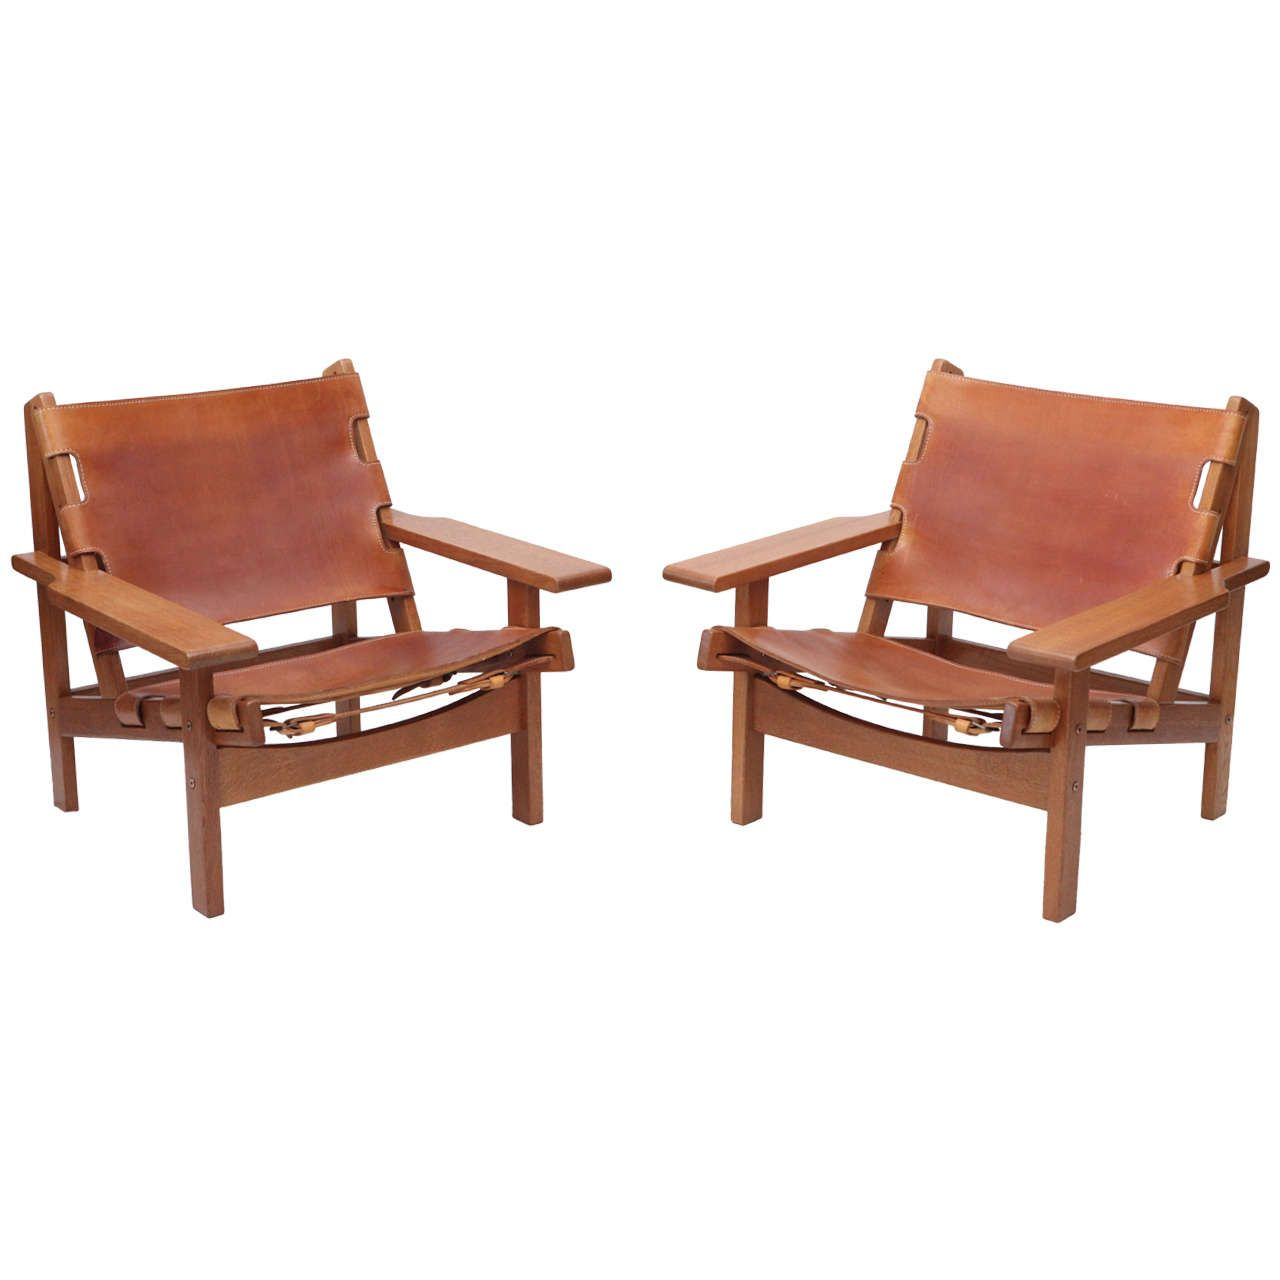 Antique lounge chairs - Furniture